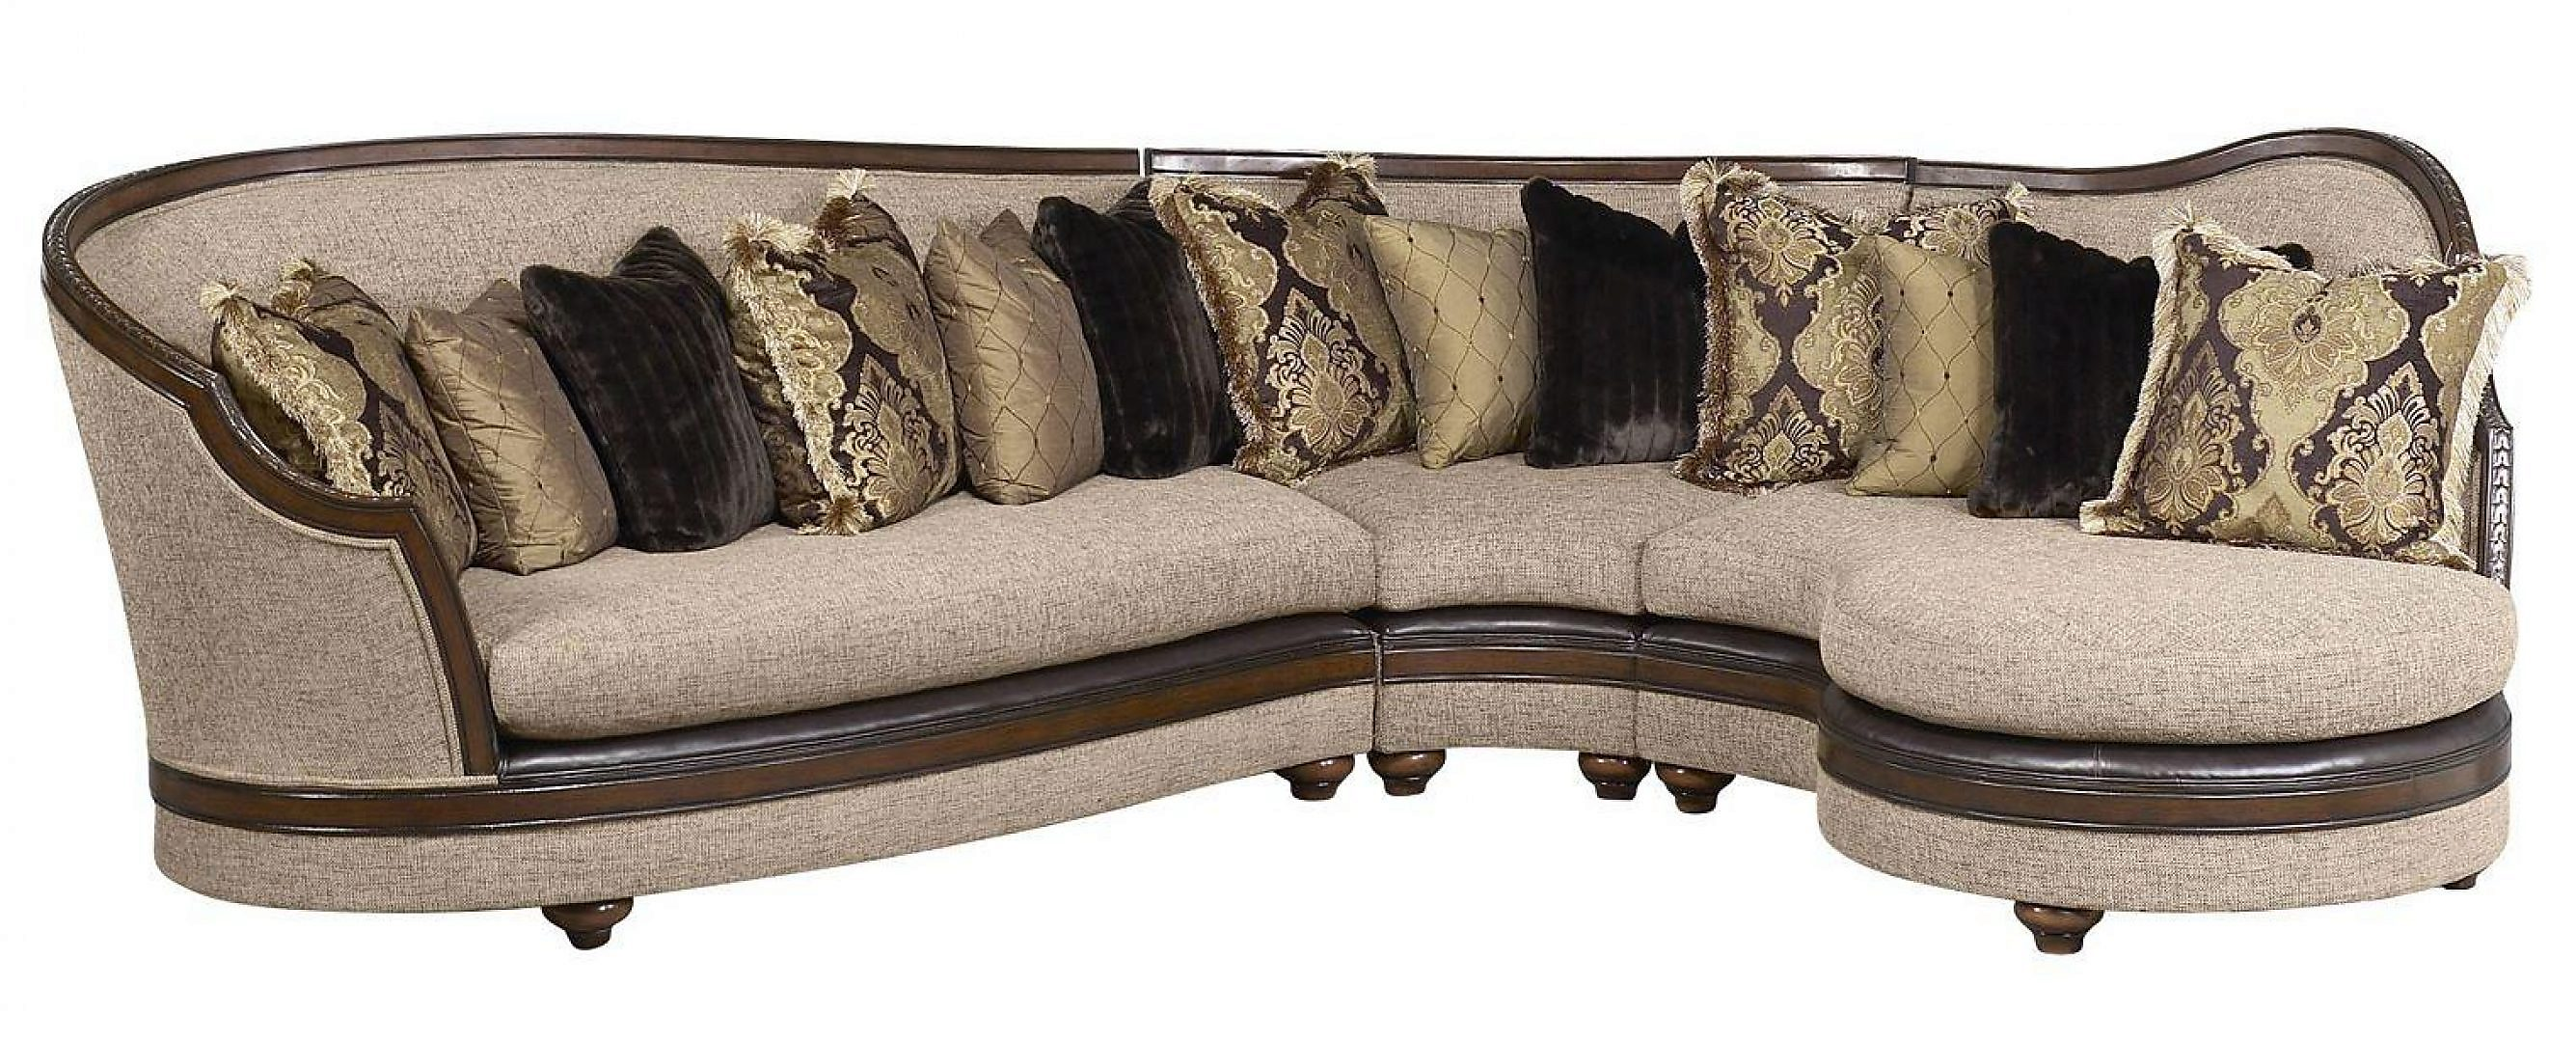 Bennetti Latte Beige Fabric Sectional Sofa Walnut Wood Donatella Sectional Right  RIGHT Classic Traditional